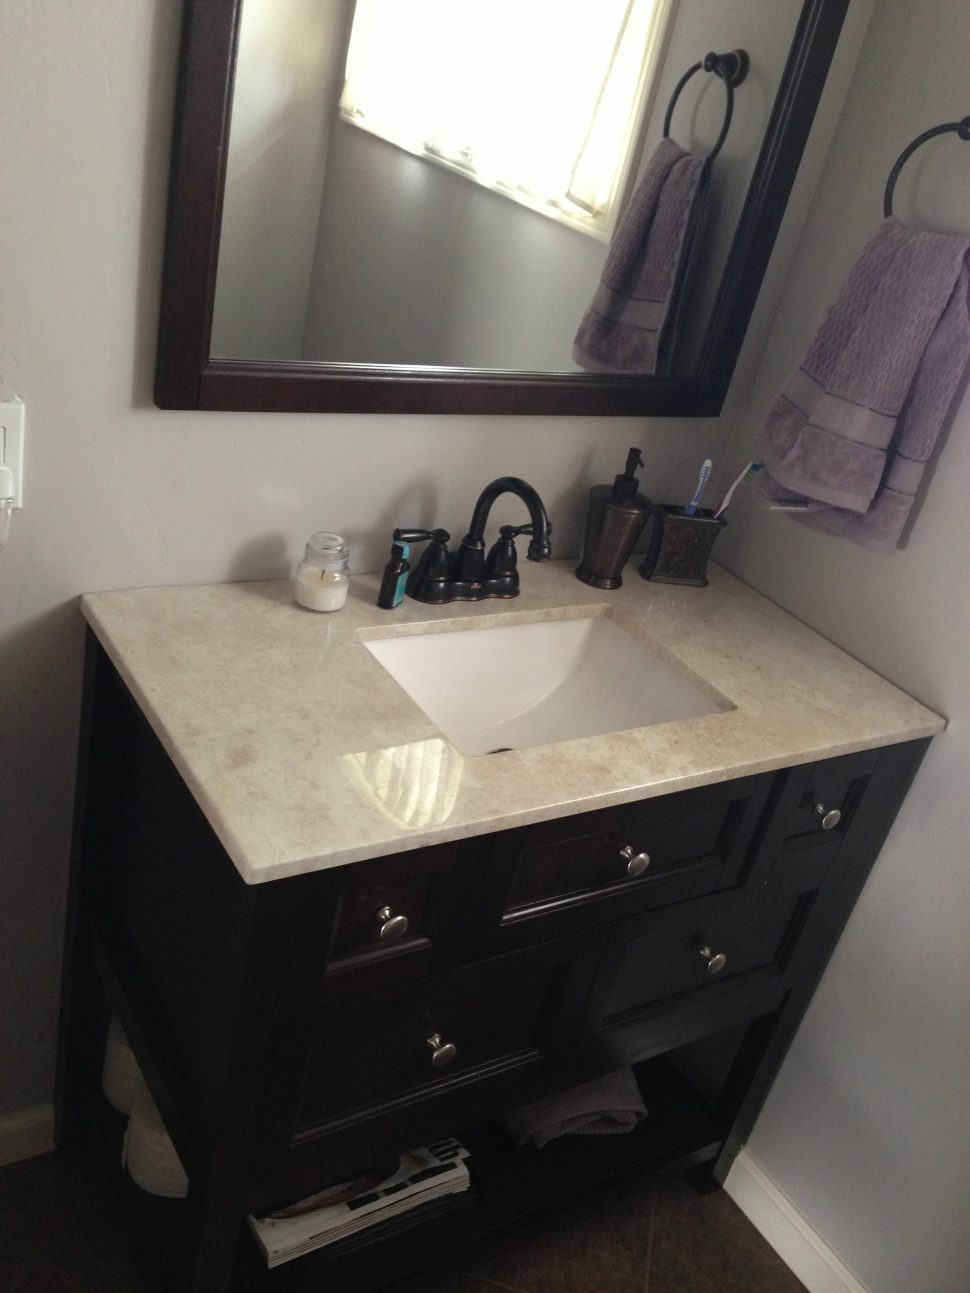 Home Depot Vanity and Sink | Vanity Home Depot | Home Depot Bathroom Vanities with Tops